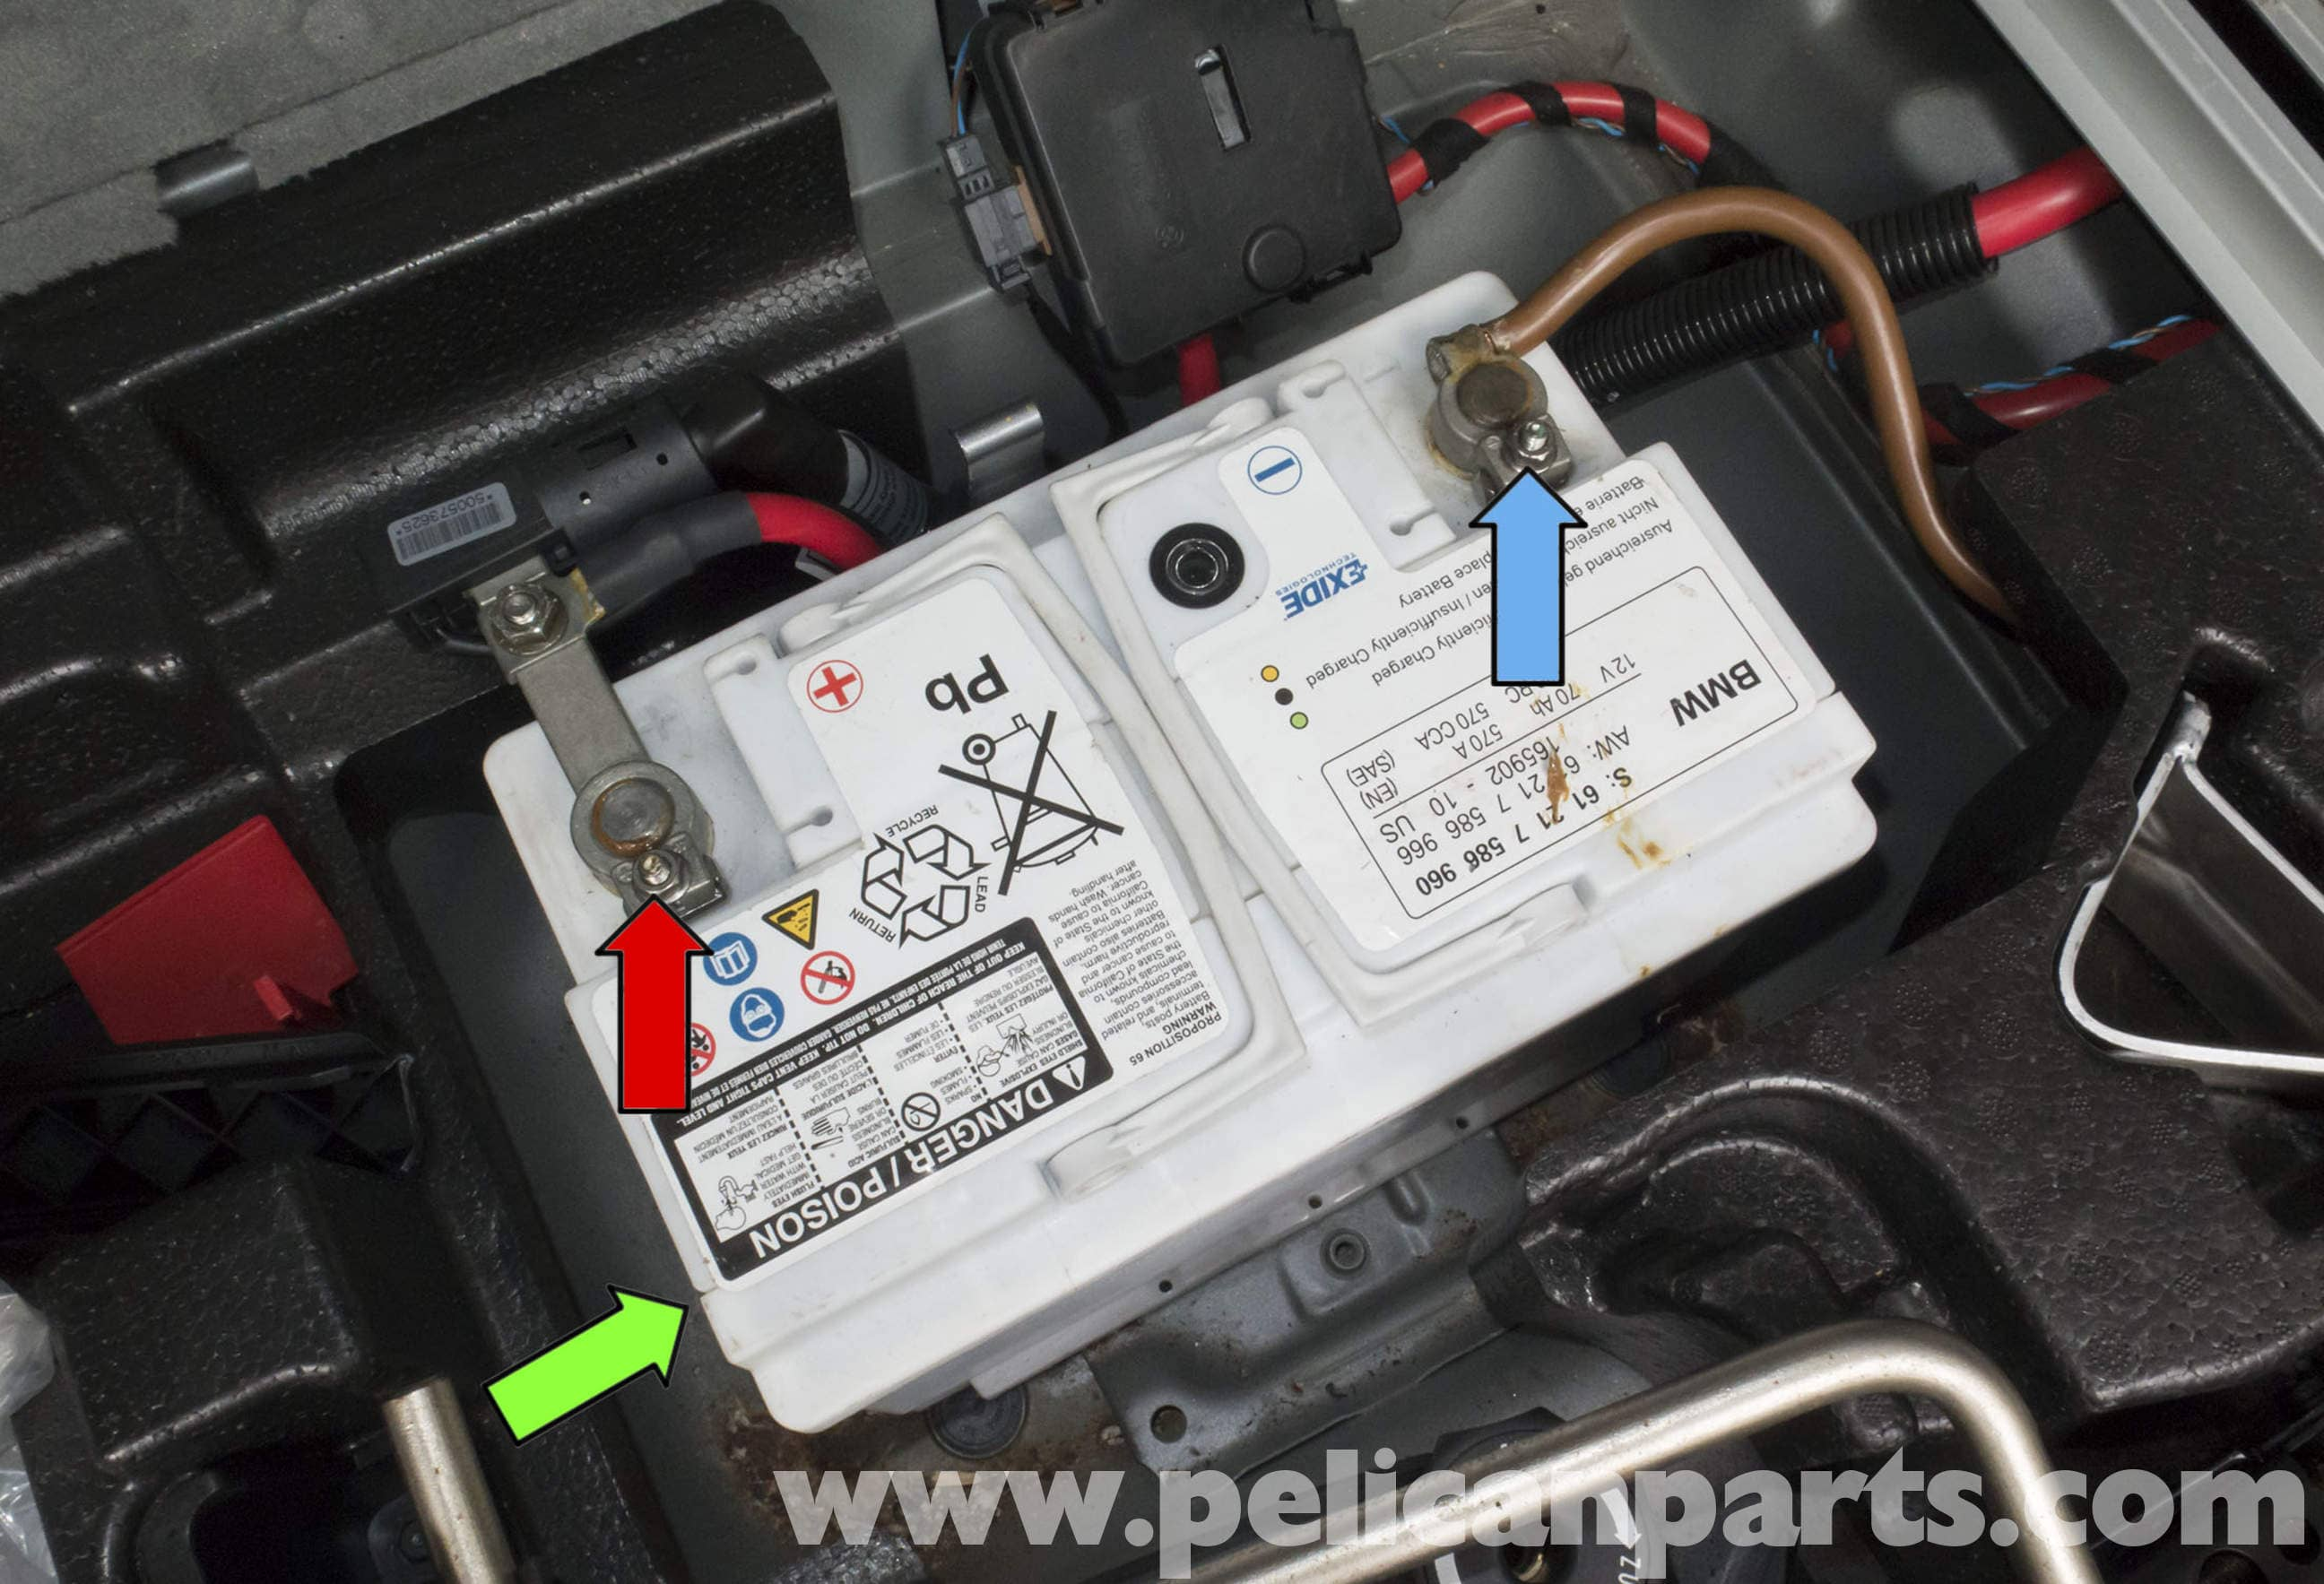 Pelican Parts Technical Article Bmw X3 Battery